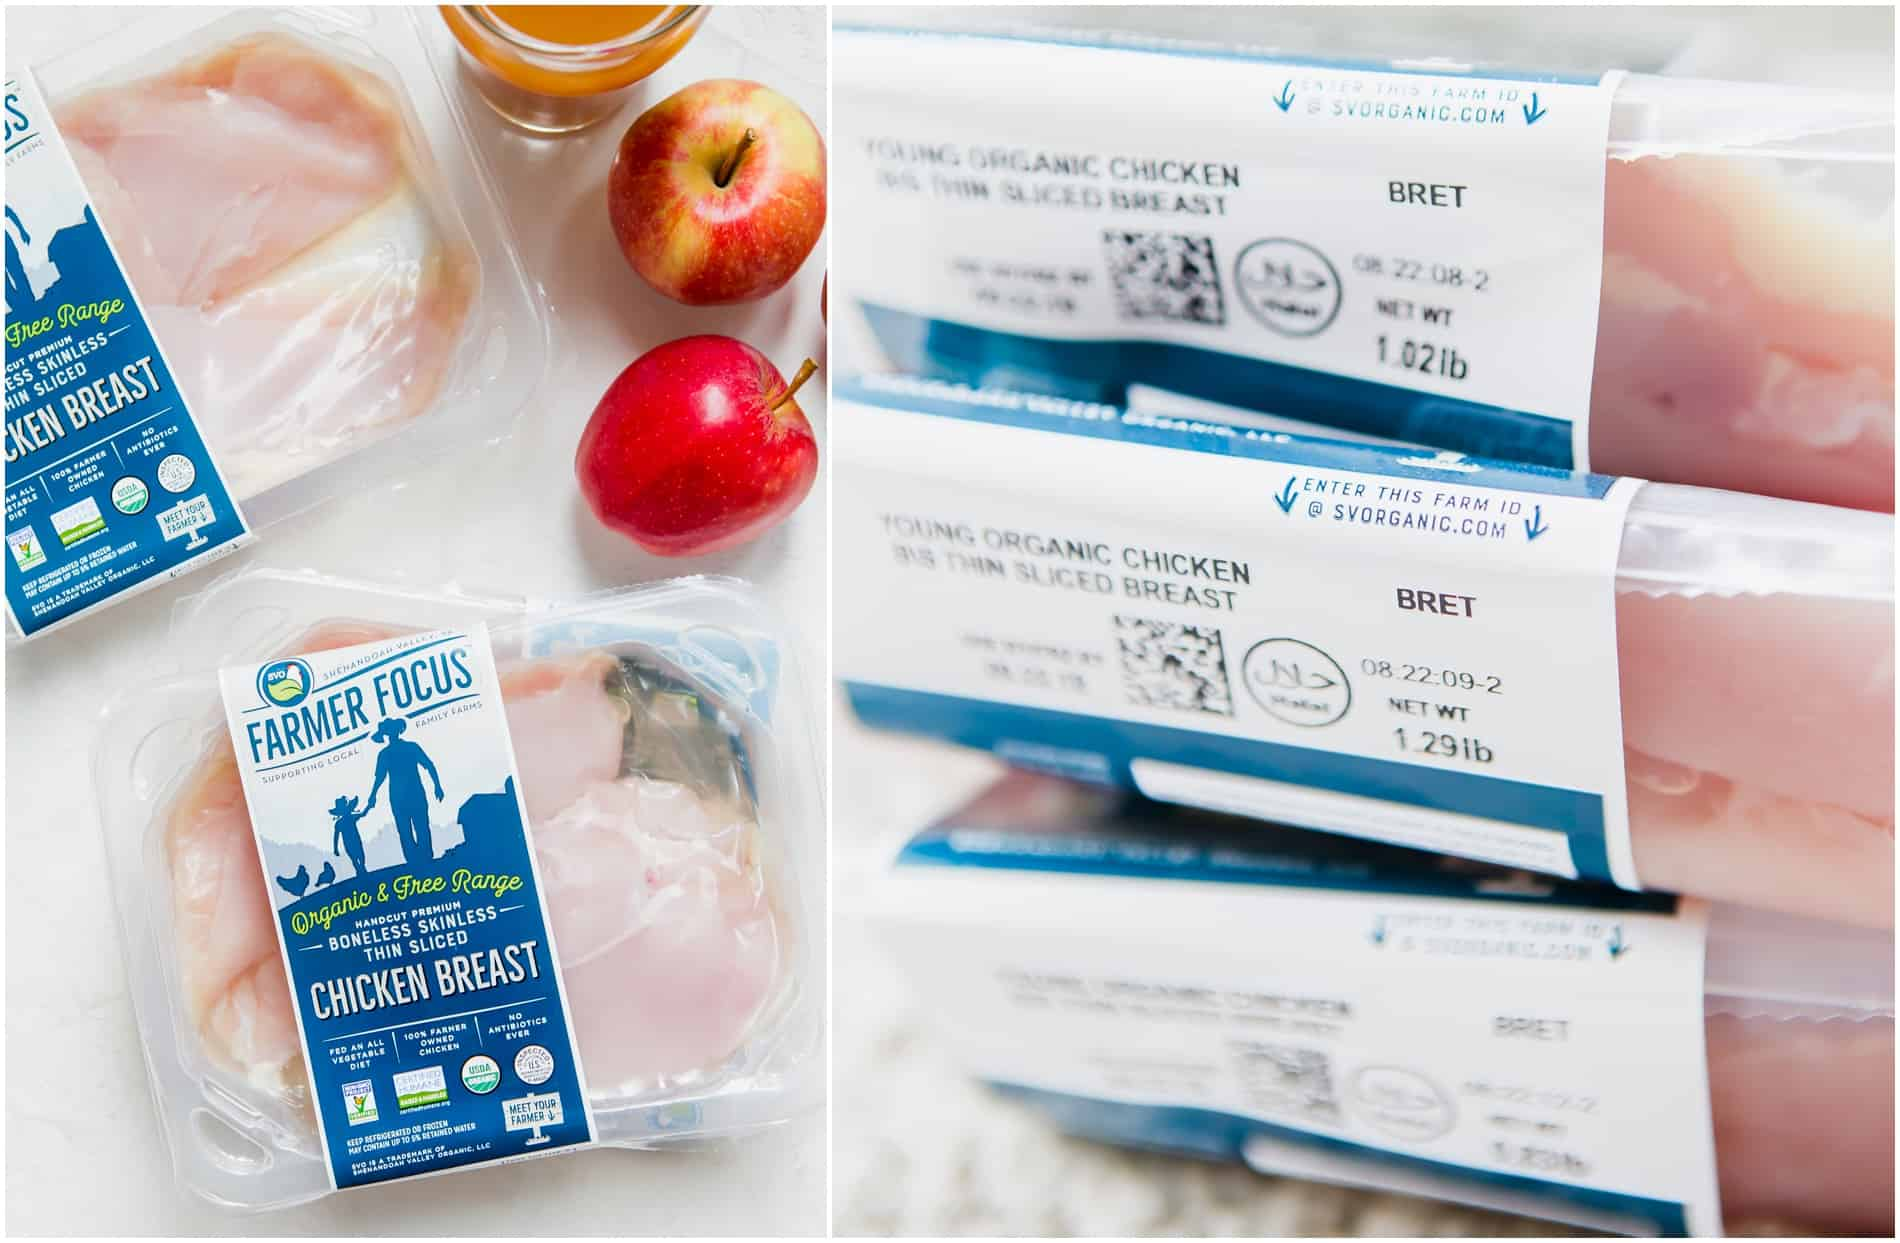 Packages of Farmer Focus chicken breast